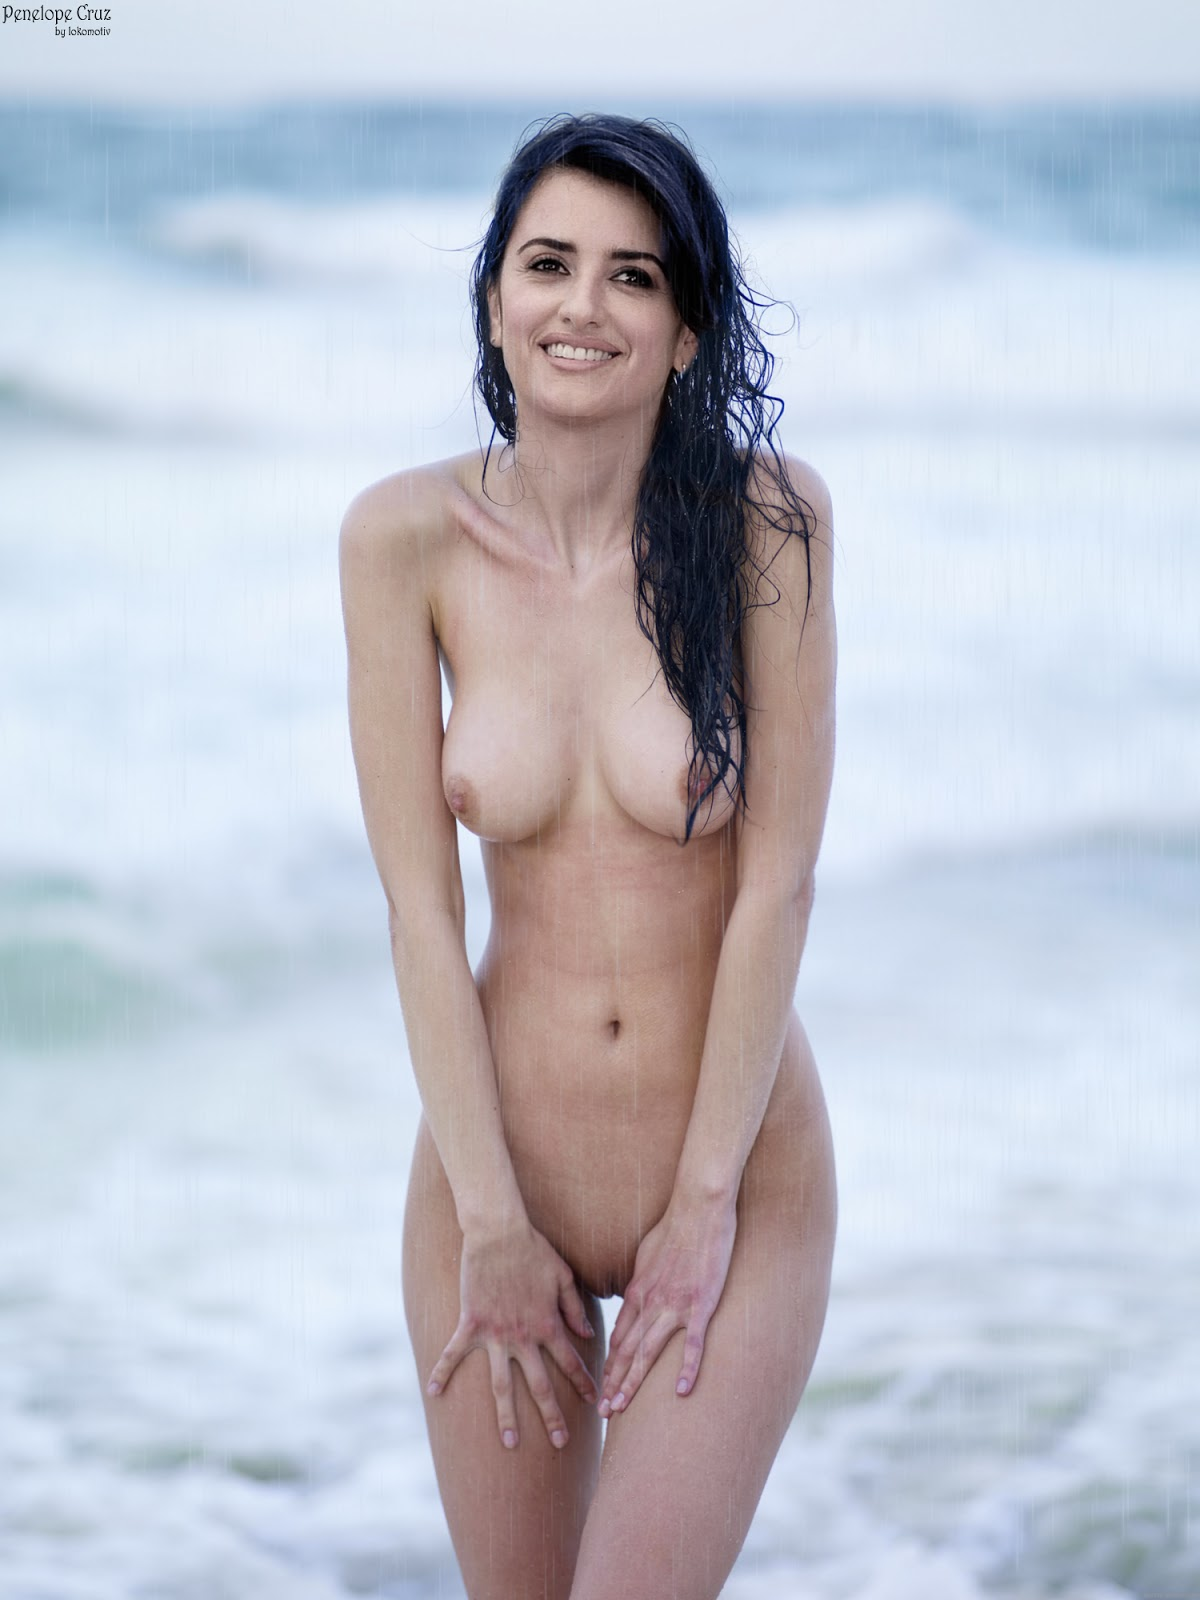 The amusing Penelope cruz celebrity nude